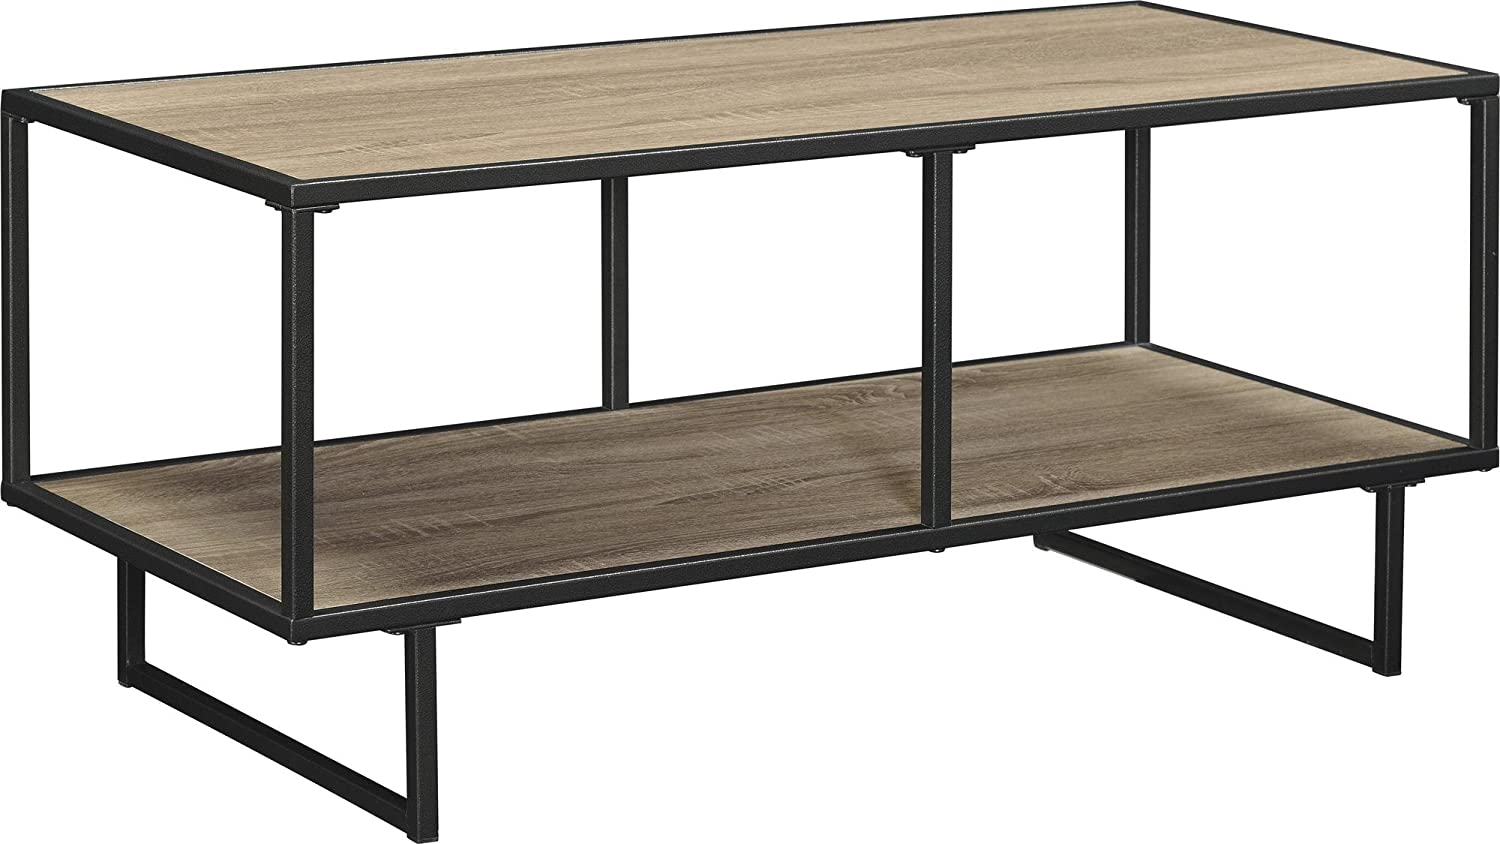 Ameriwood Home Emmett TV Stand Coffee Table for TVs up to 42 wide, Weathered Oak